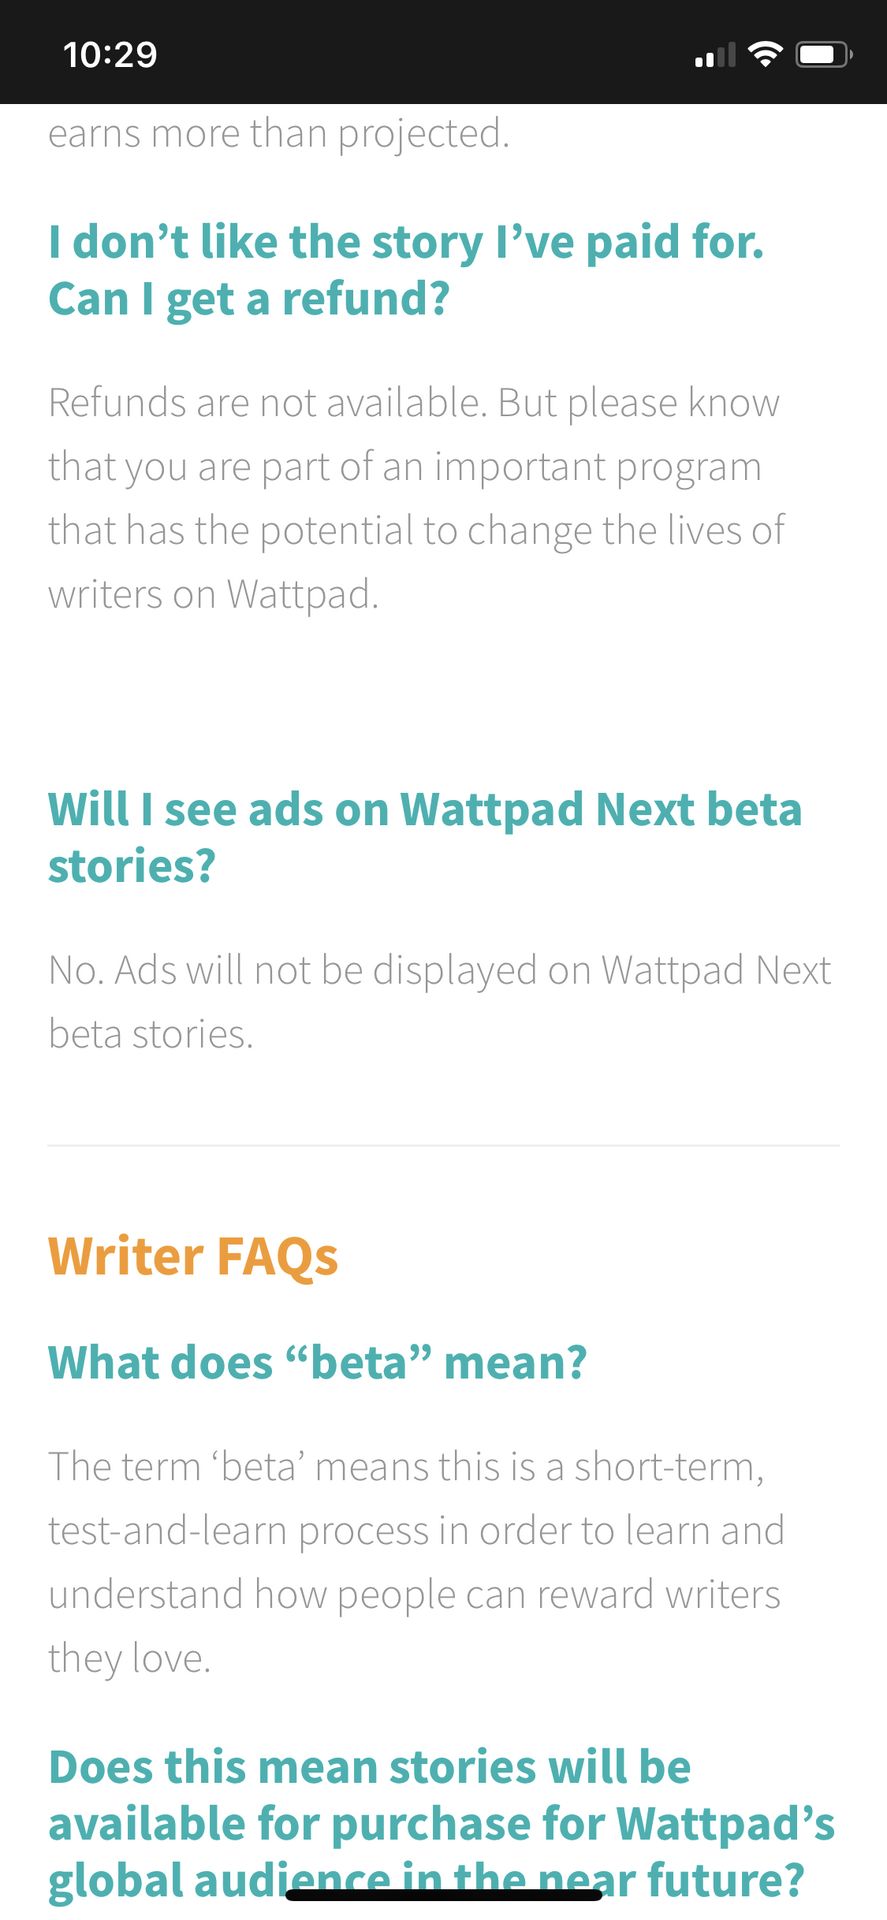 Let's Rant  Let's Get Personal - A/N - Wattpad Next Beta